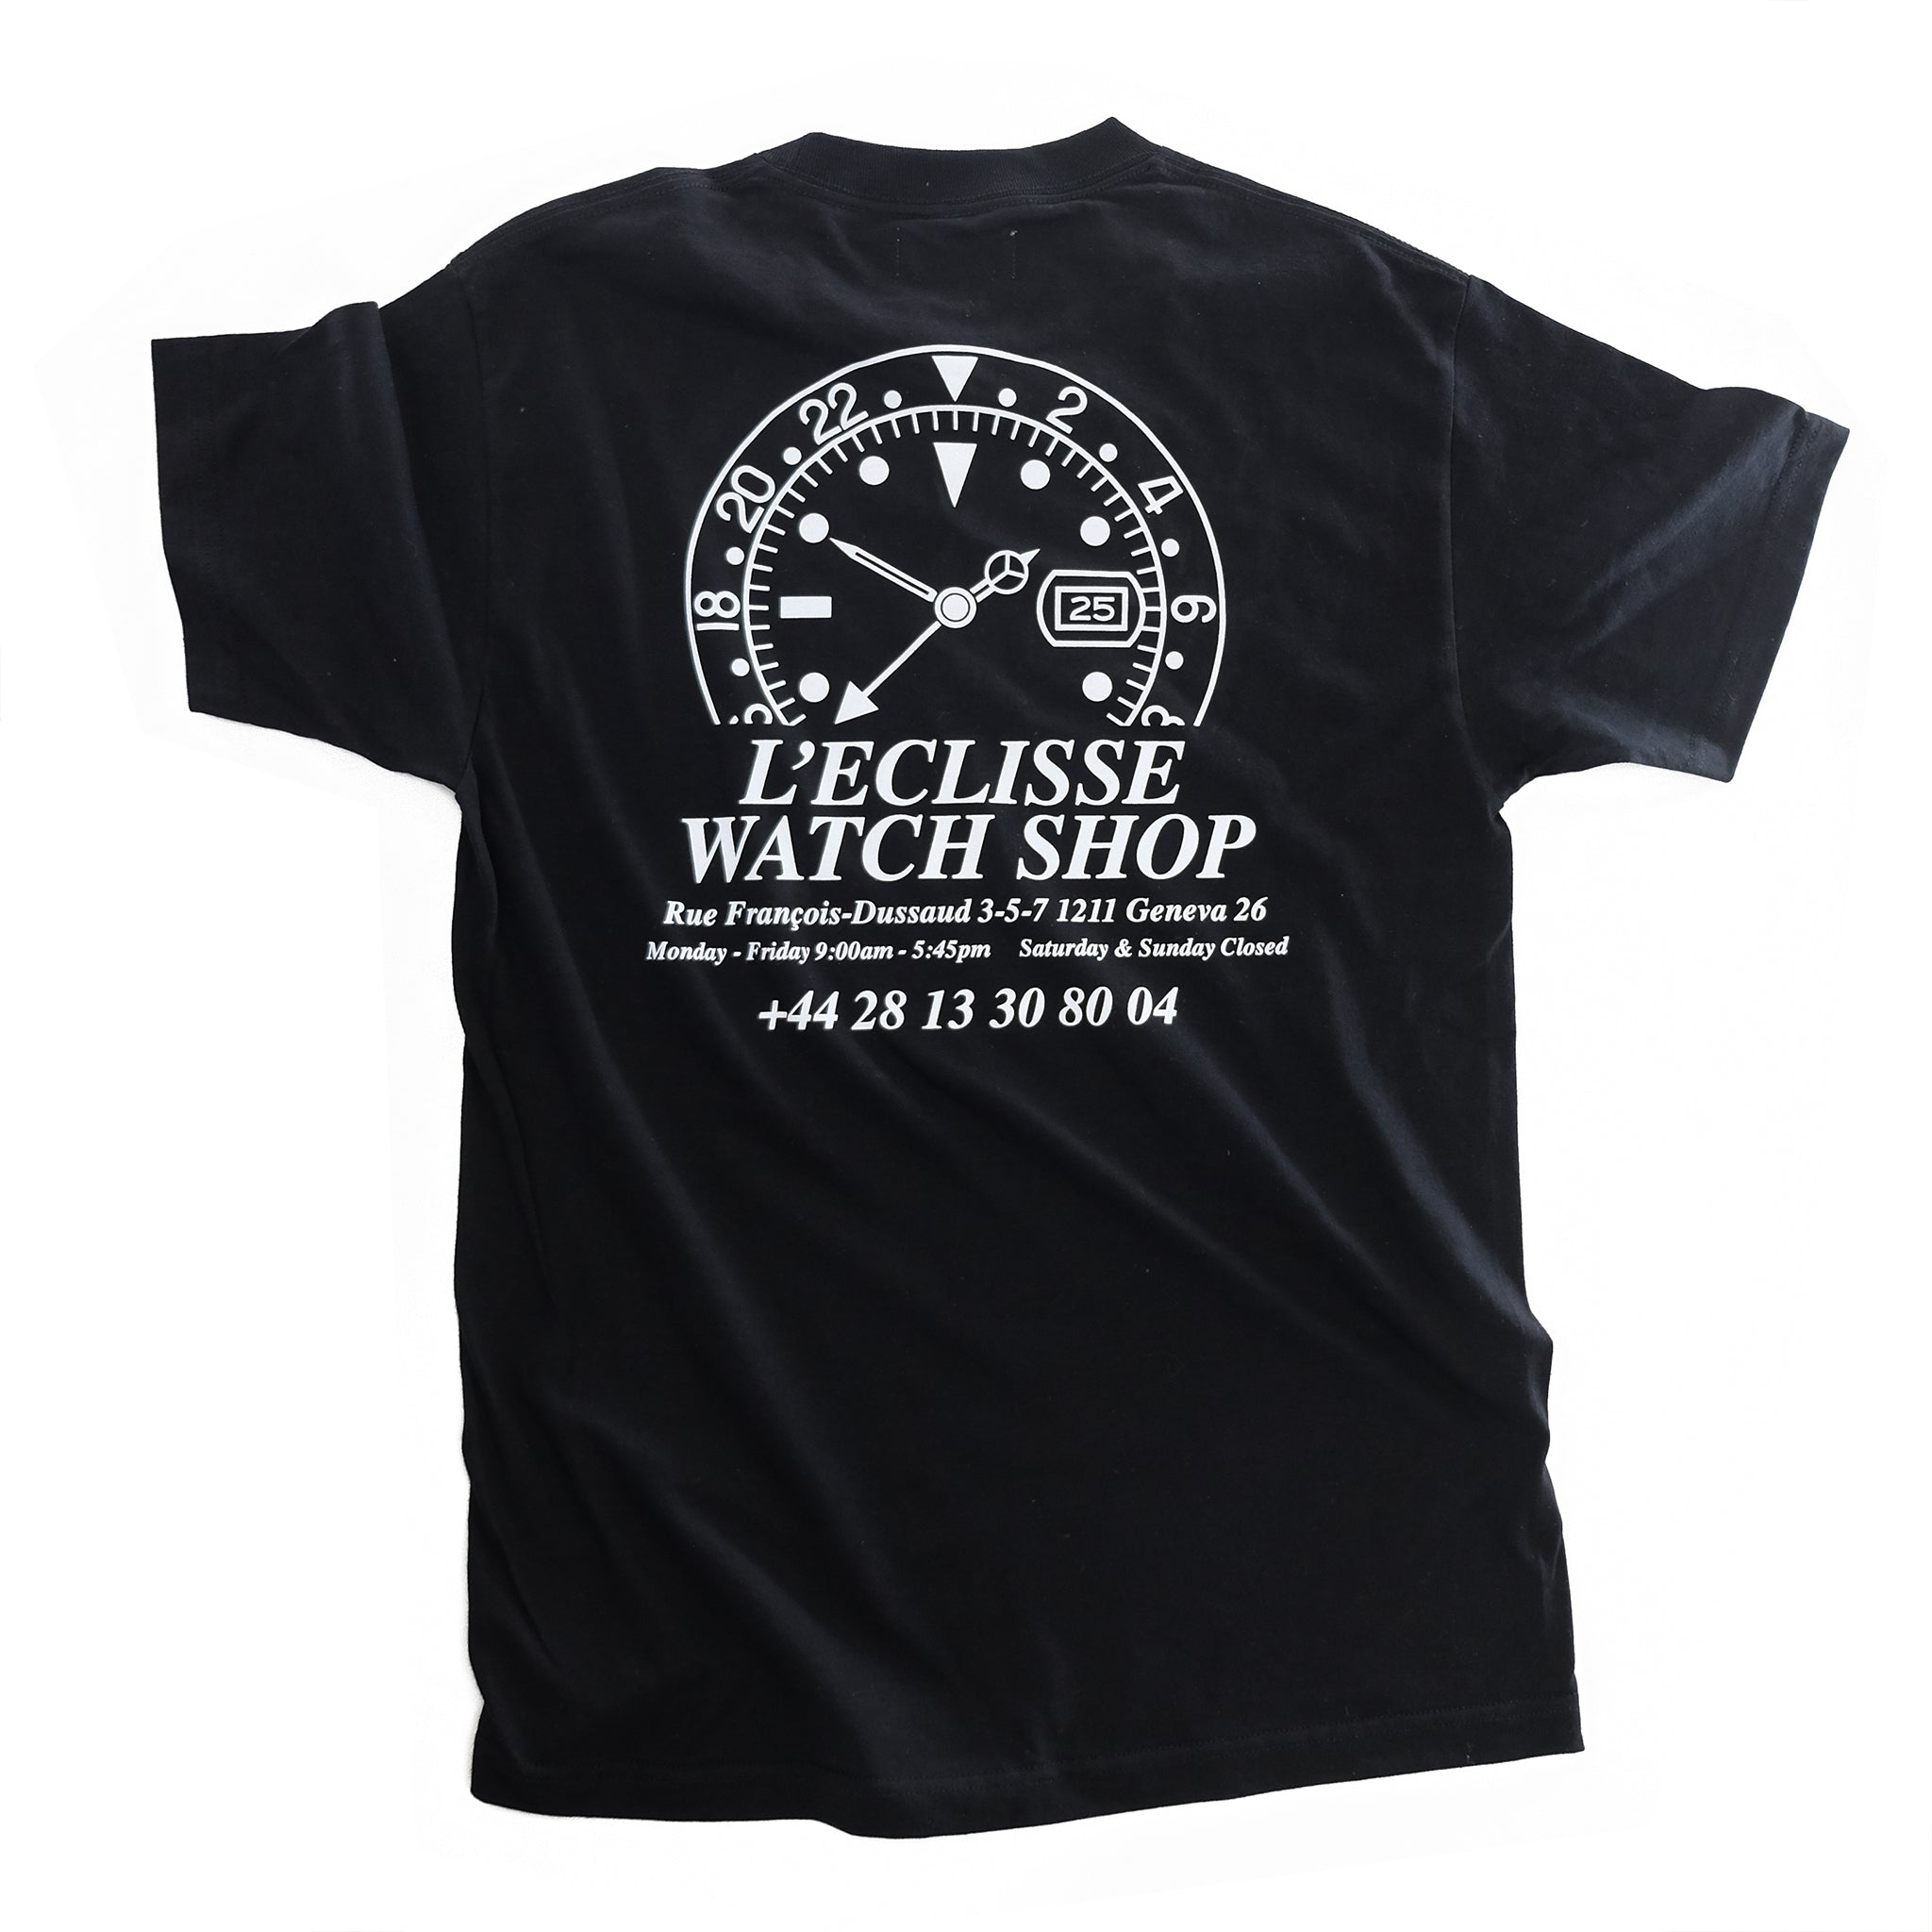 Watchshop Tee Black